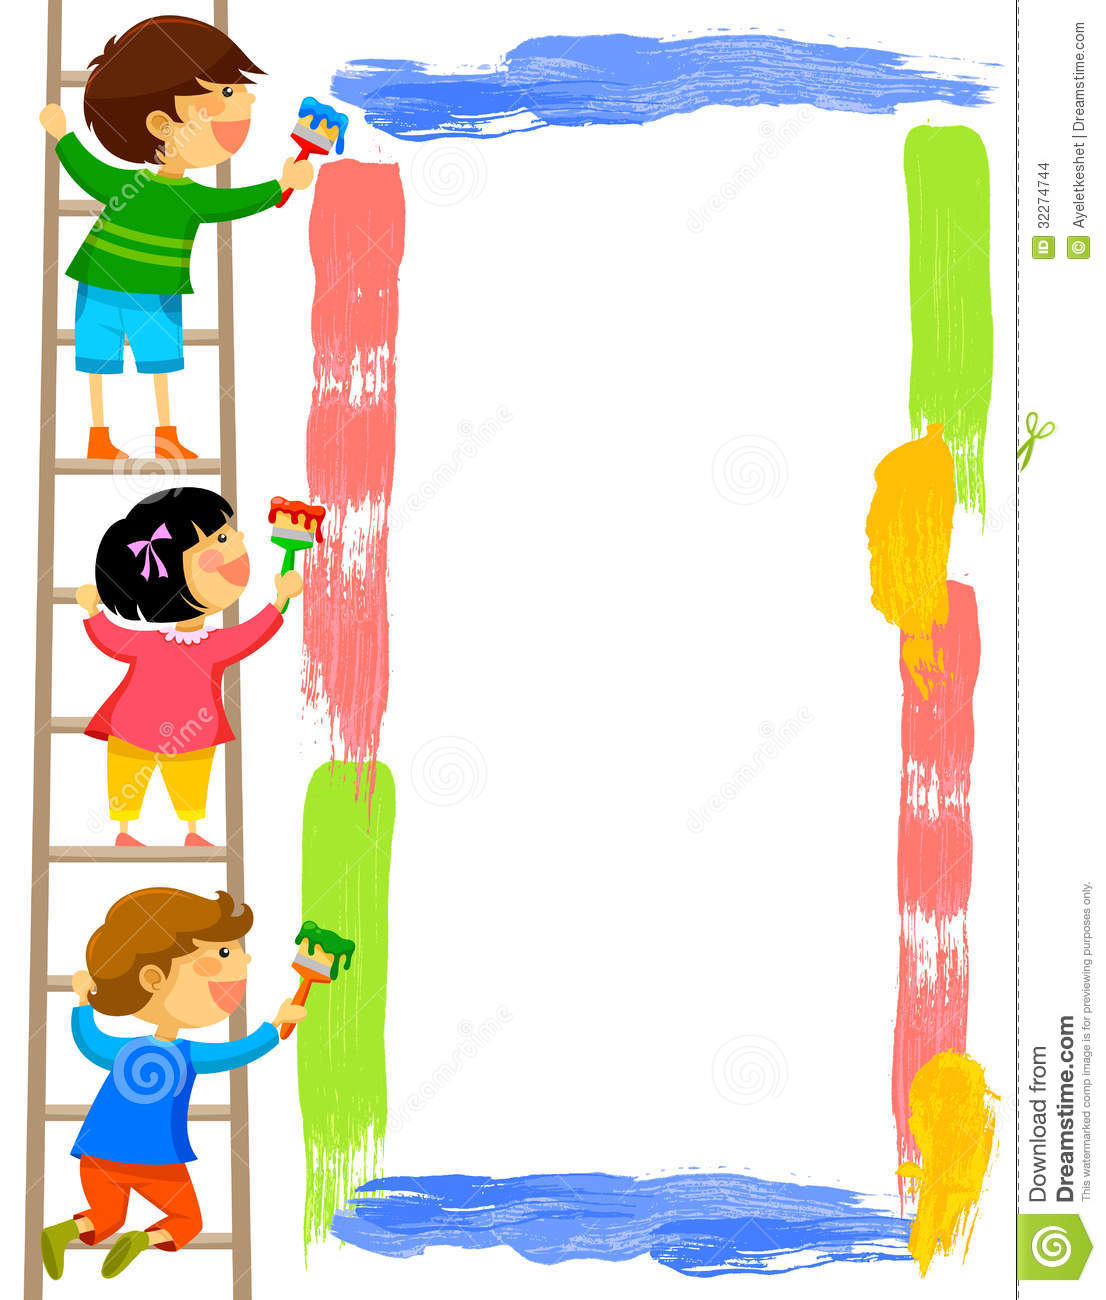 kids painting a frame stock images - Kids Paint Free